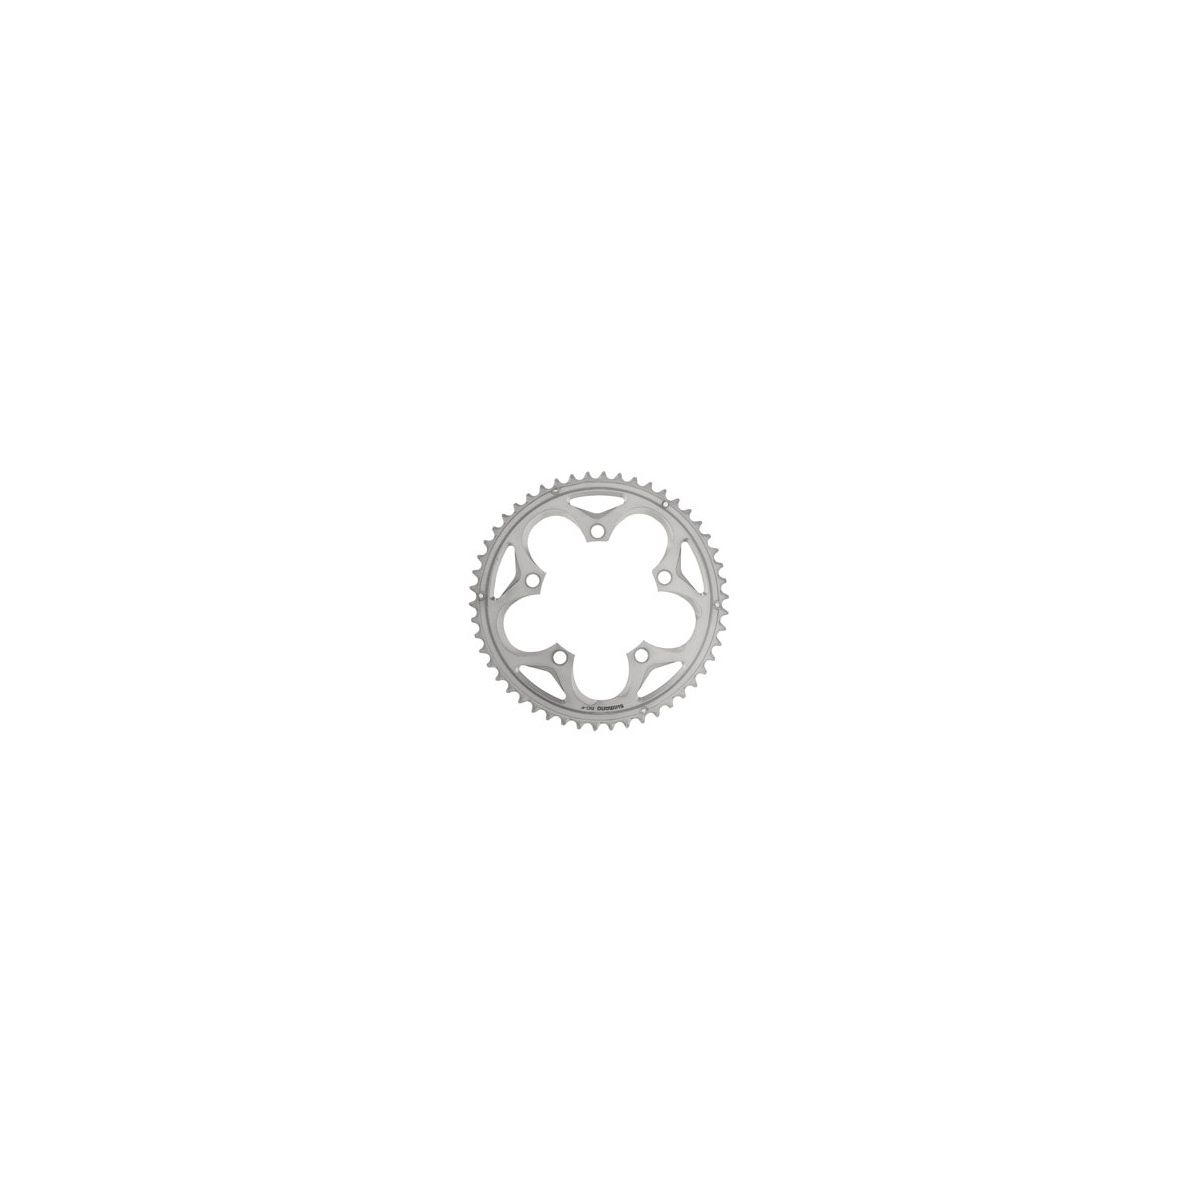 105 FC-5750 50 Tooth Chainring